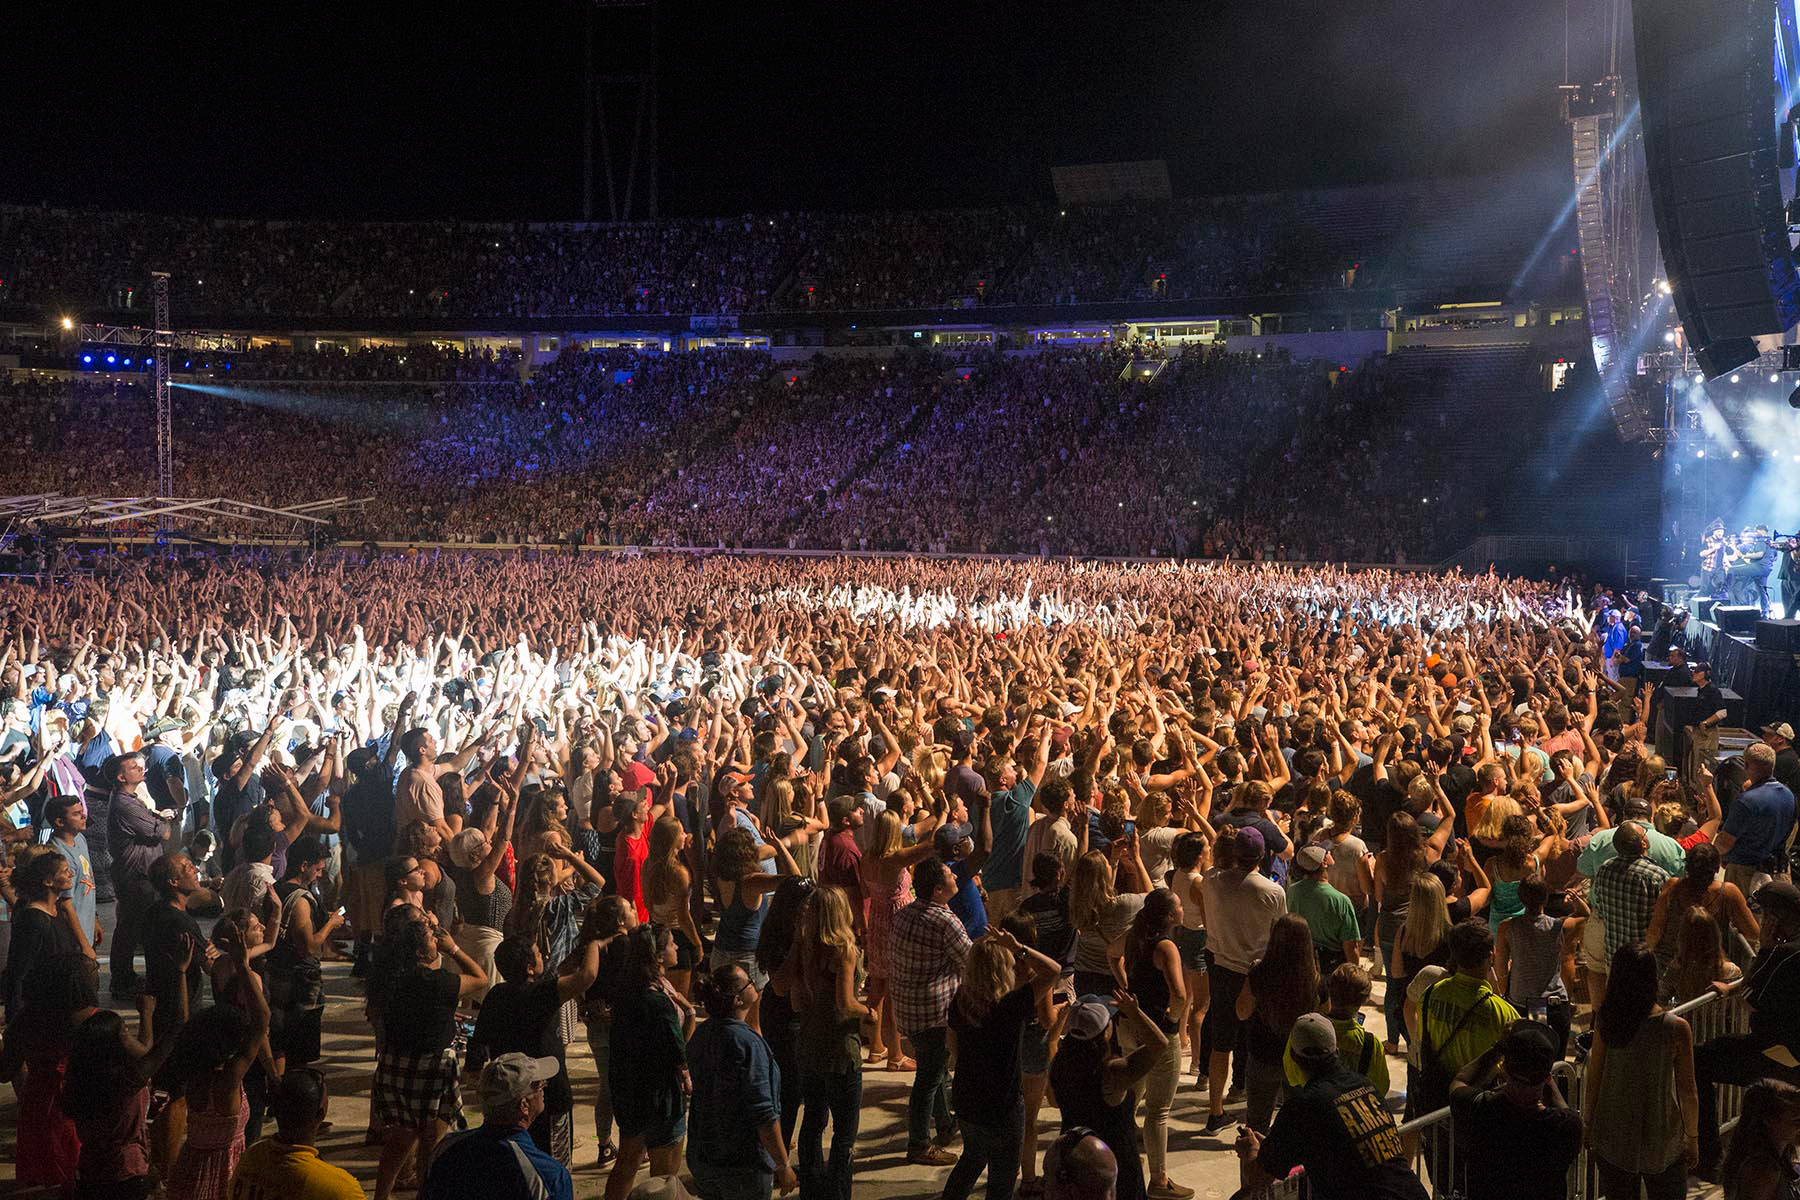 Tens of thousands of fans enjoyed a megawatt lineup of performers at the Scott Stadium concert Sunday night.